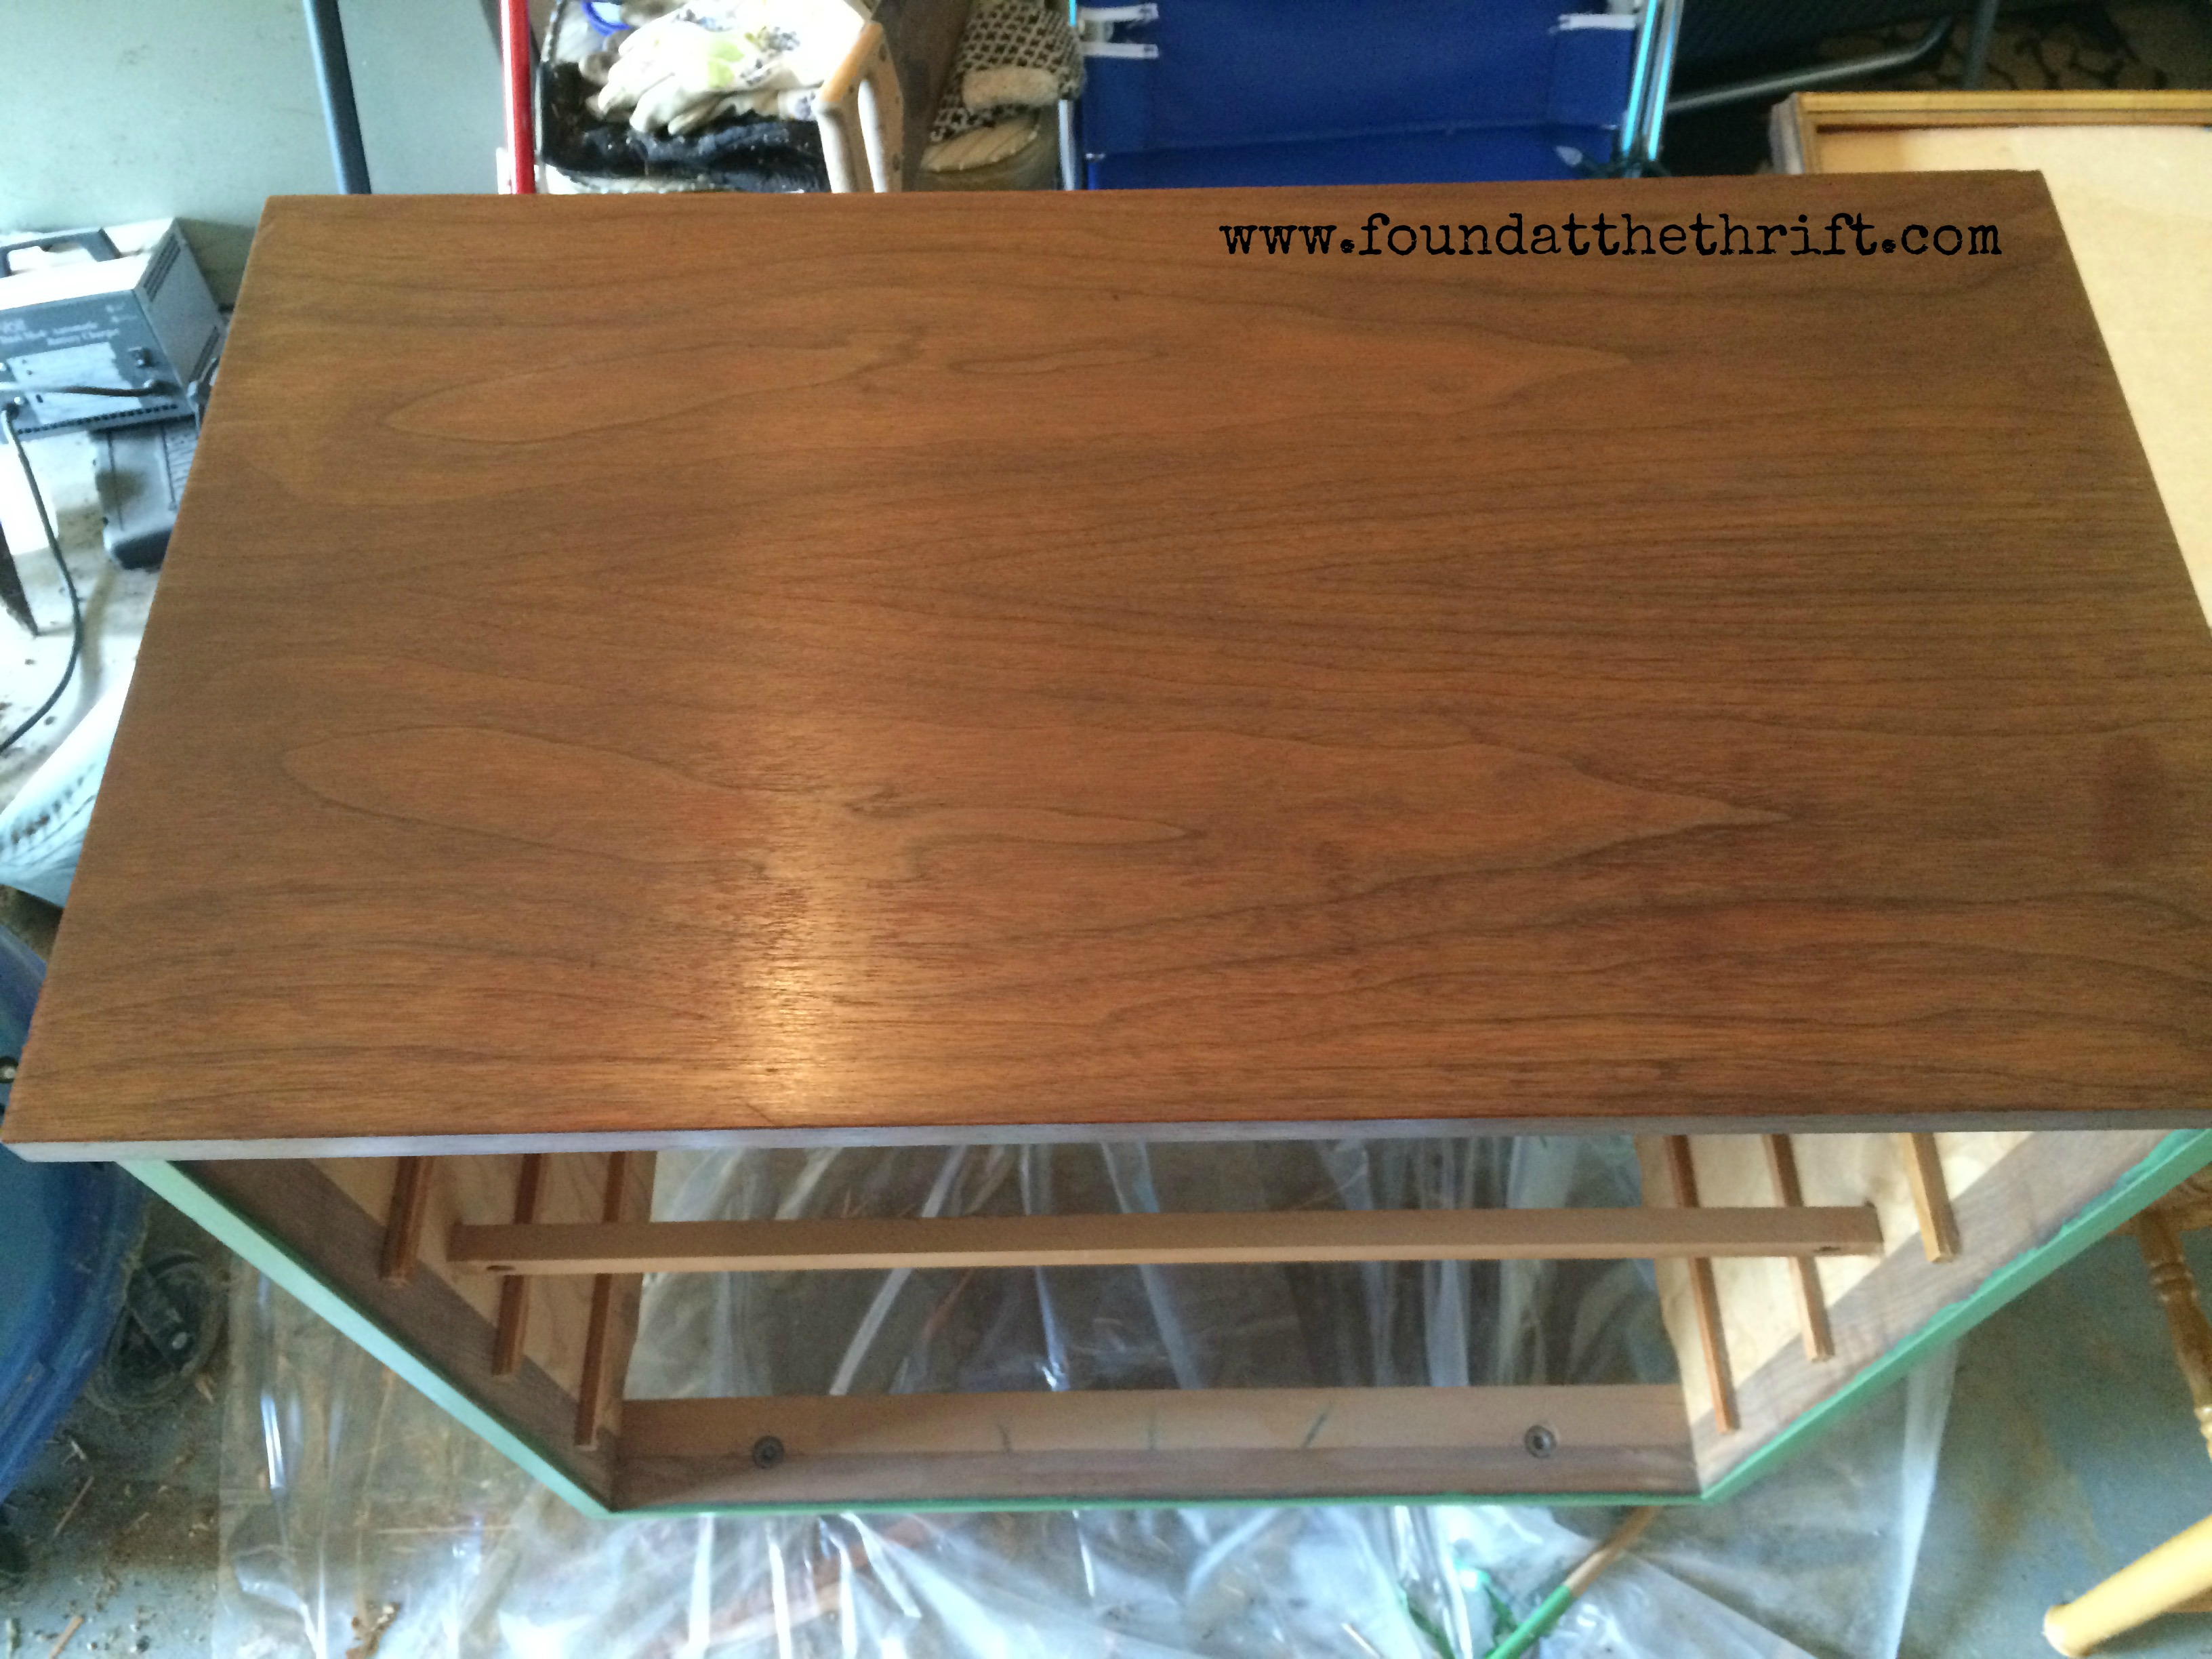 After Staining, Dresser Stained, Stained Dresser, Upcycle, Upcycled, DIY,  DIY